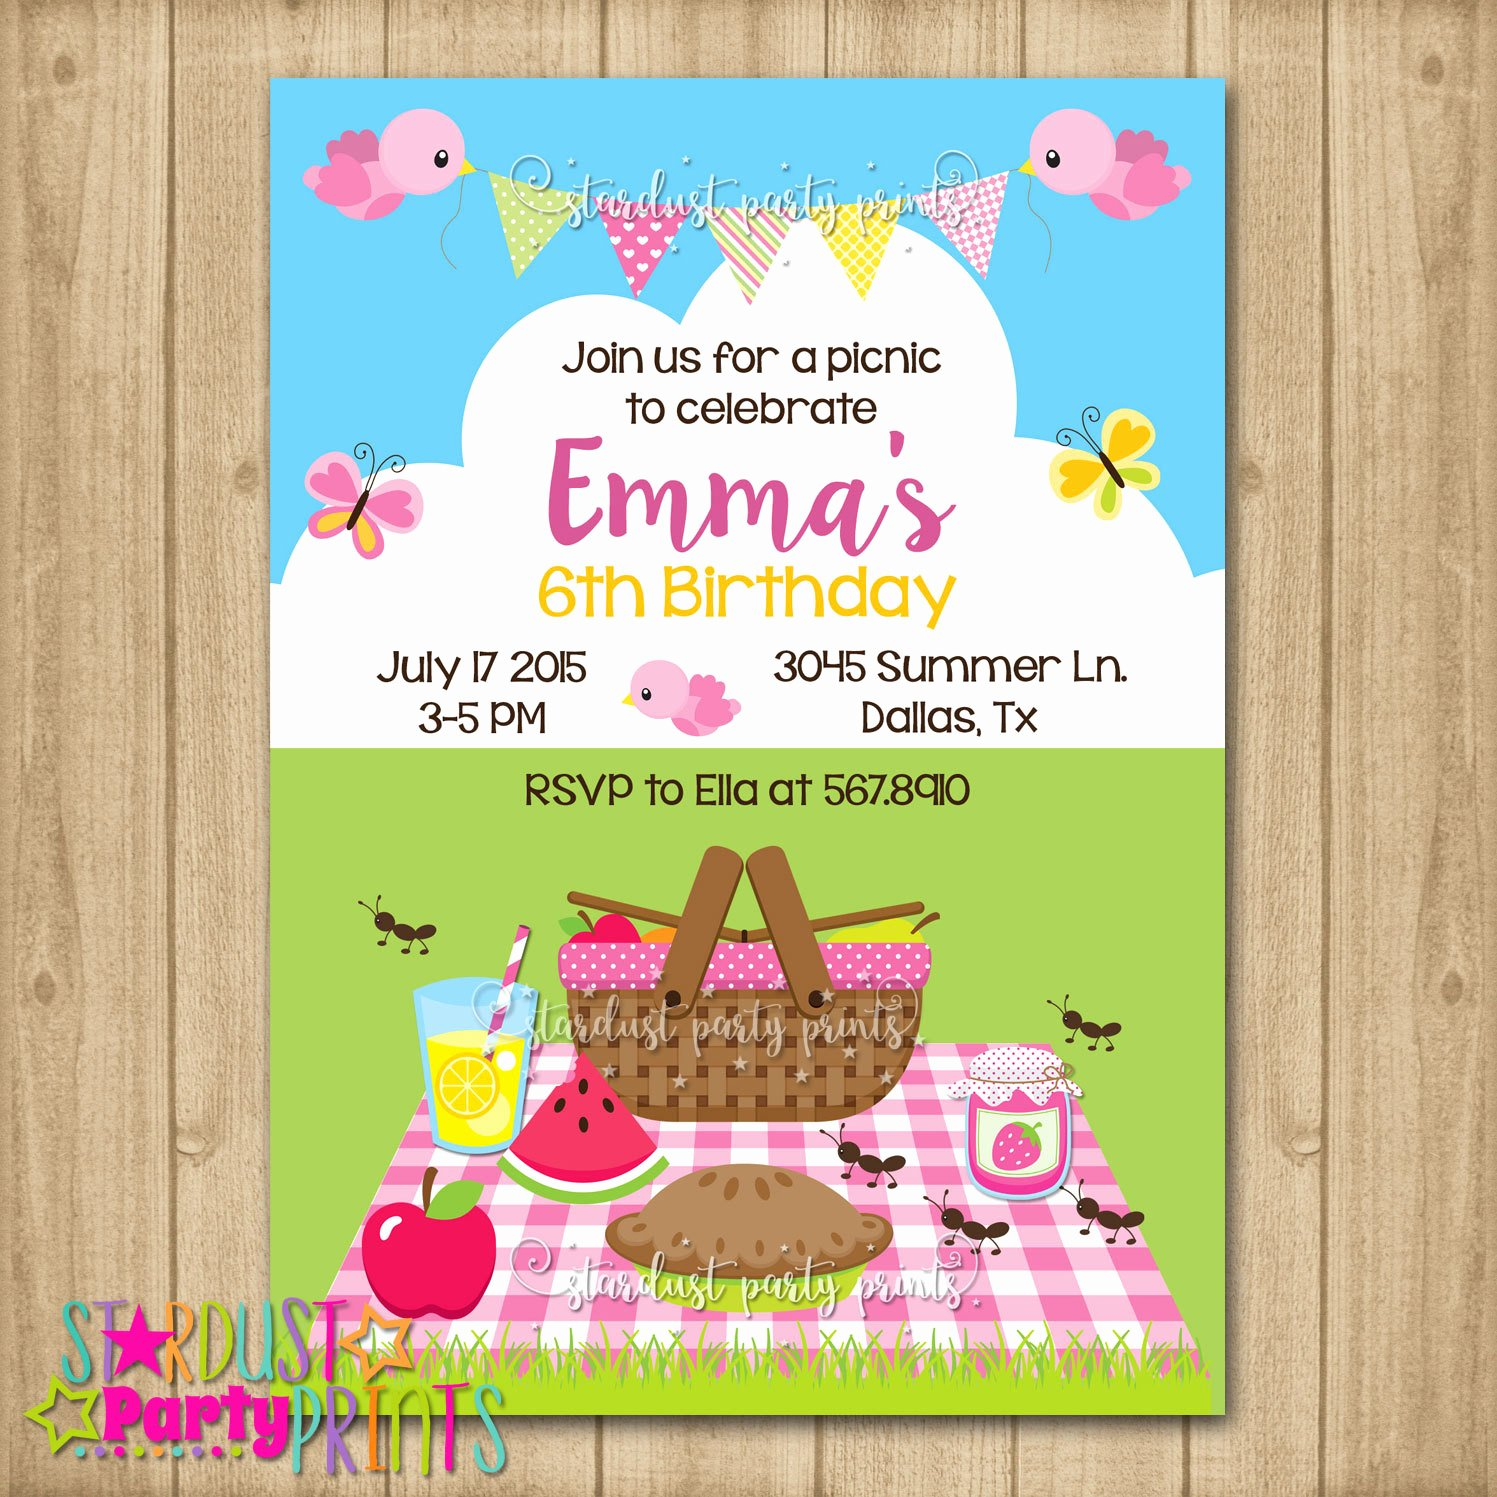 Picnic Birthday Party Invitations Unique Picnic Birthday Invitation Picninc Birthday Picnic